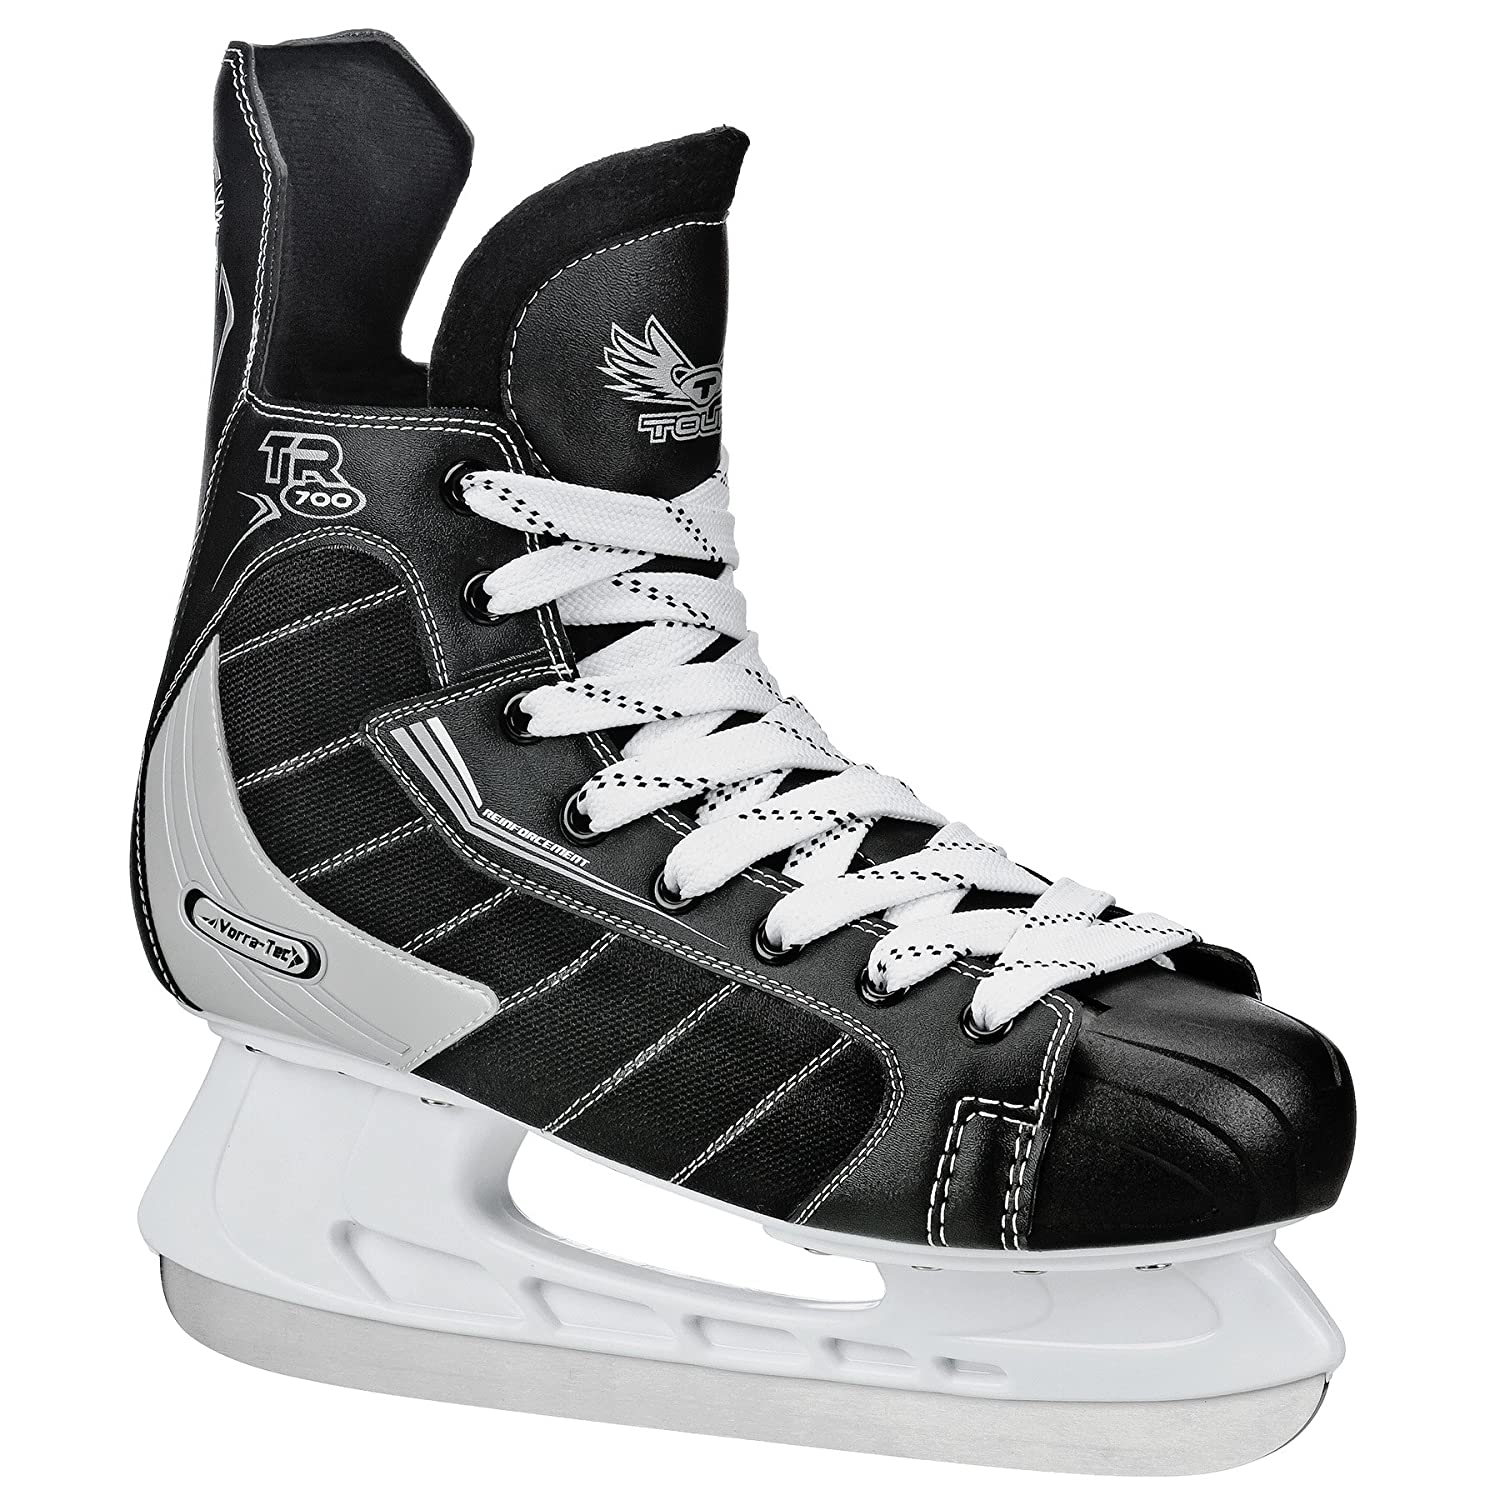 Bauer Vapor X500 Youth Ice Hockey Skates